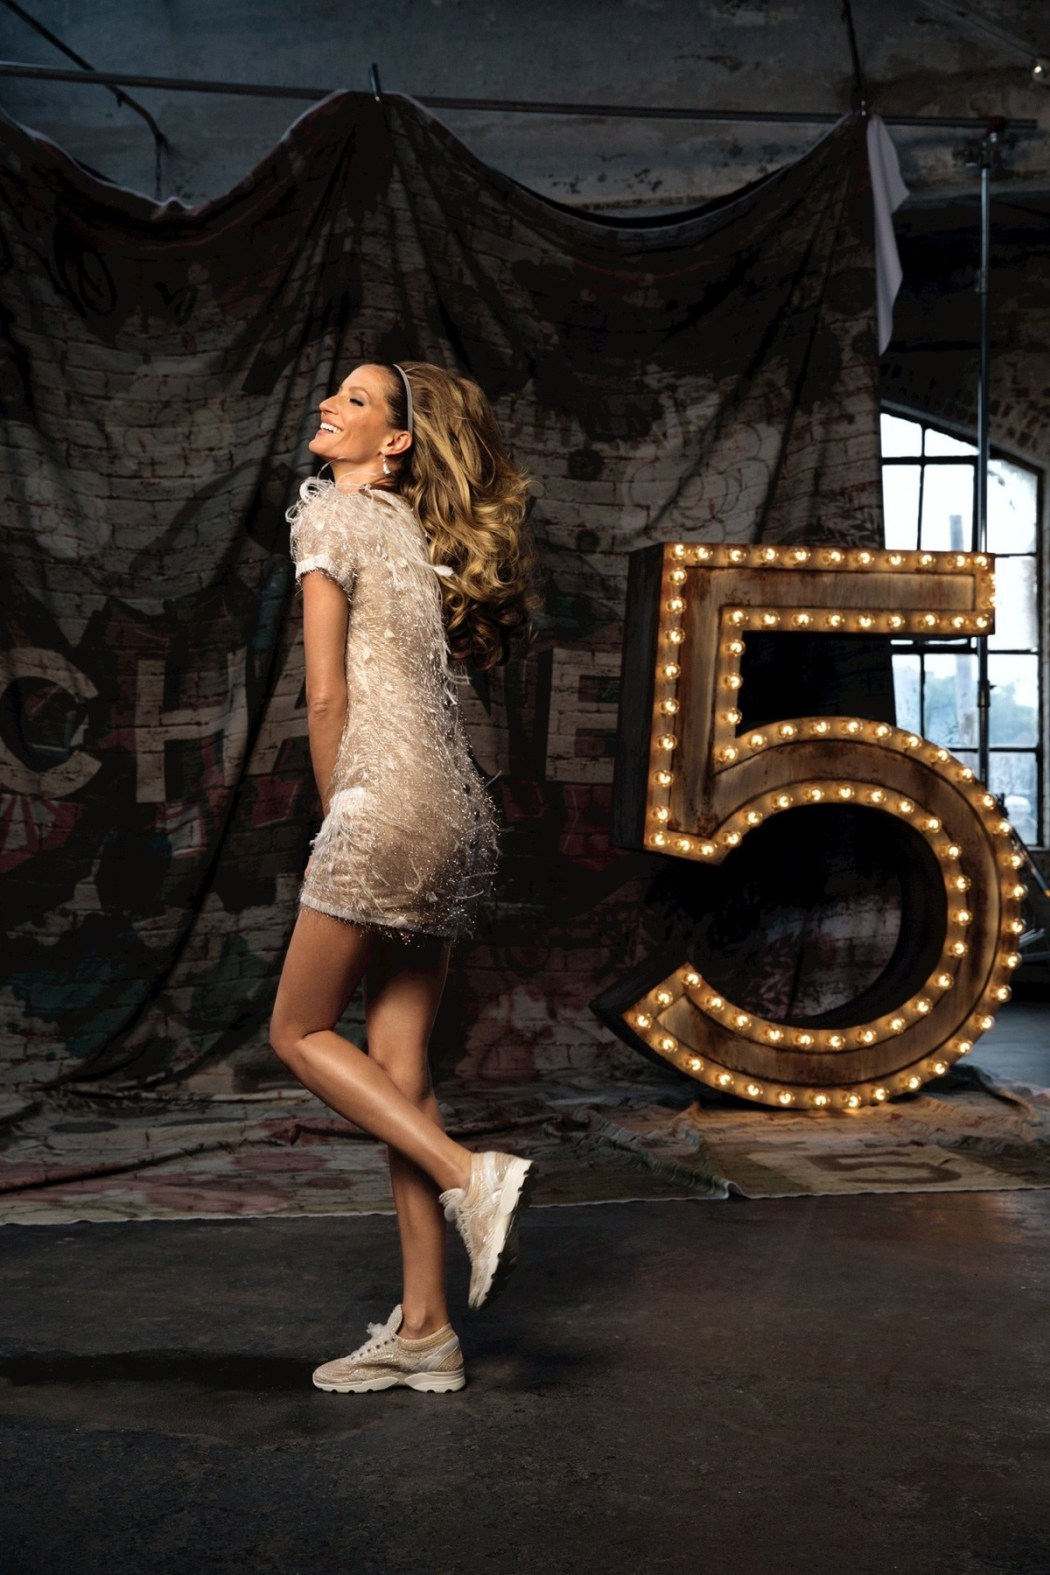 Chanel N 5 Film Featuring Gisele Bundchen 1